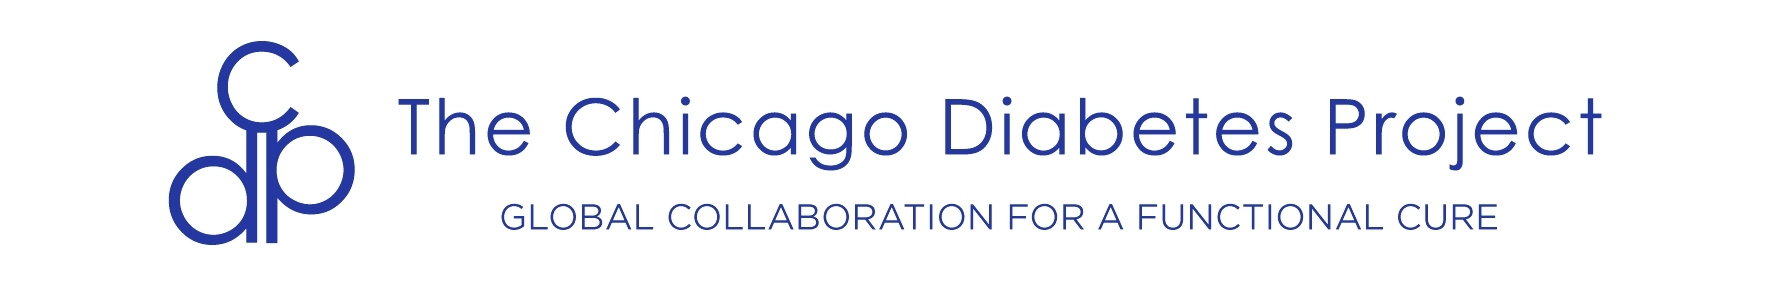 Chicago Diabetes Project